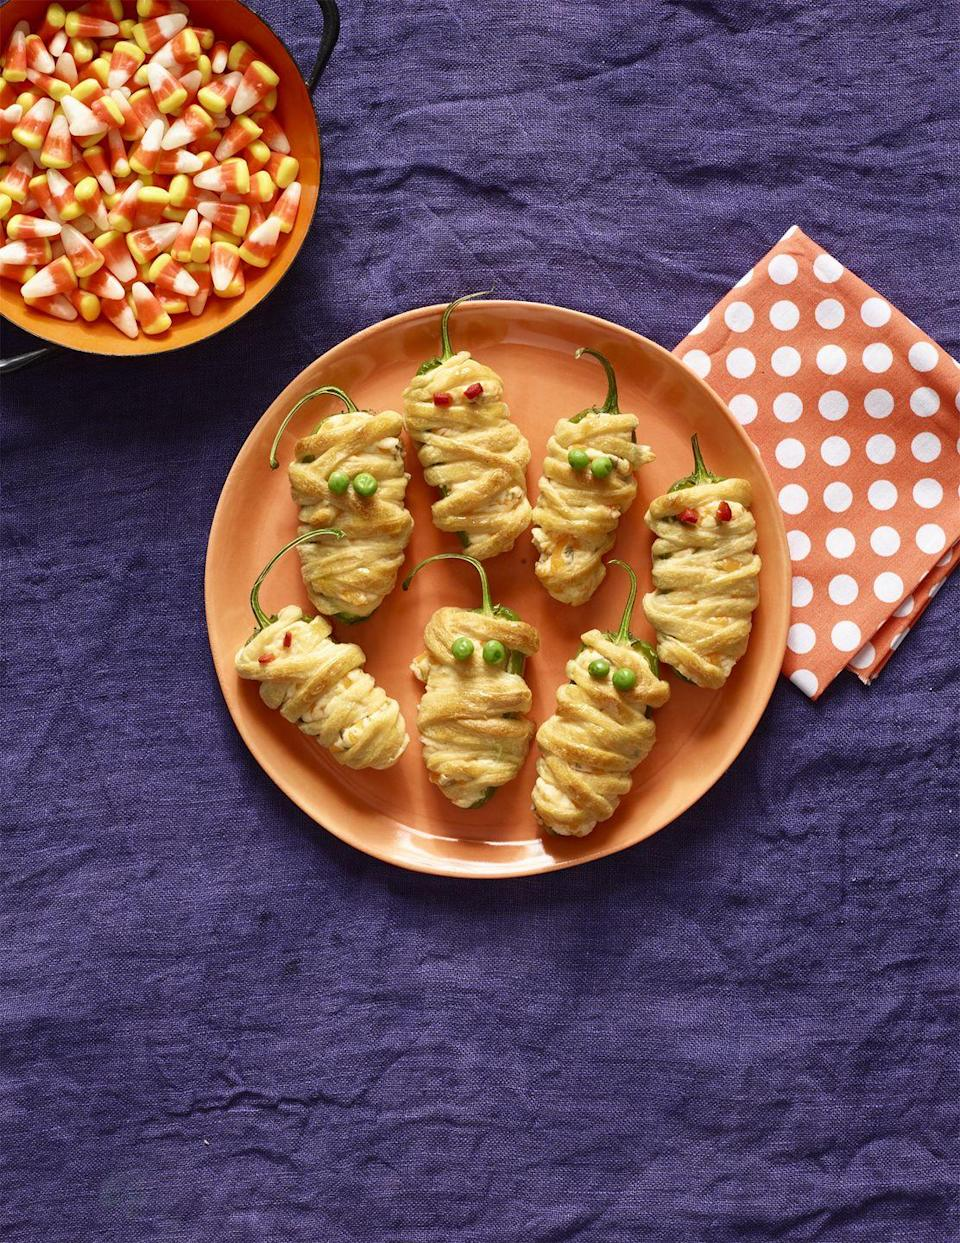 """<p>To make this recipe, wrap jalapeño poppers with puff pastry and add roasted red pepper for eyes.</p><p><a href=""""https://www.womansday.com/food-recipes/food-drinks/recipes/a56191/hot-pepper-mummies-recipe/"""" rel=""""nofollow noopener"""" target=""""_blank"""" data-ylk=""""slk:Get the Hot Pepper Mummies recipe."""" class=""""link rapid-noclick-resp""""><em>Get the Hot Pepper Mummies recipe.</em></a></p>"""